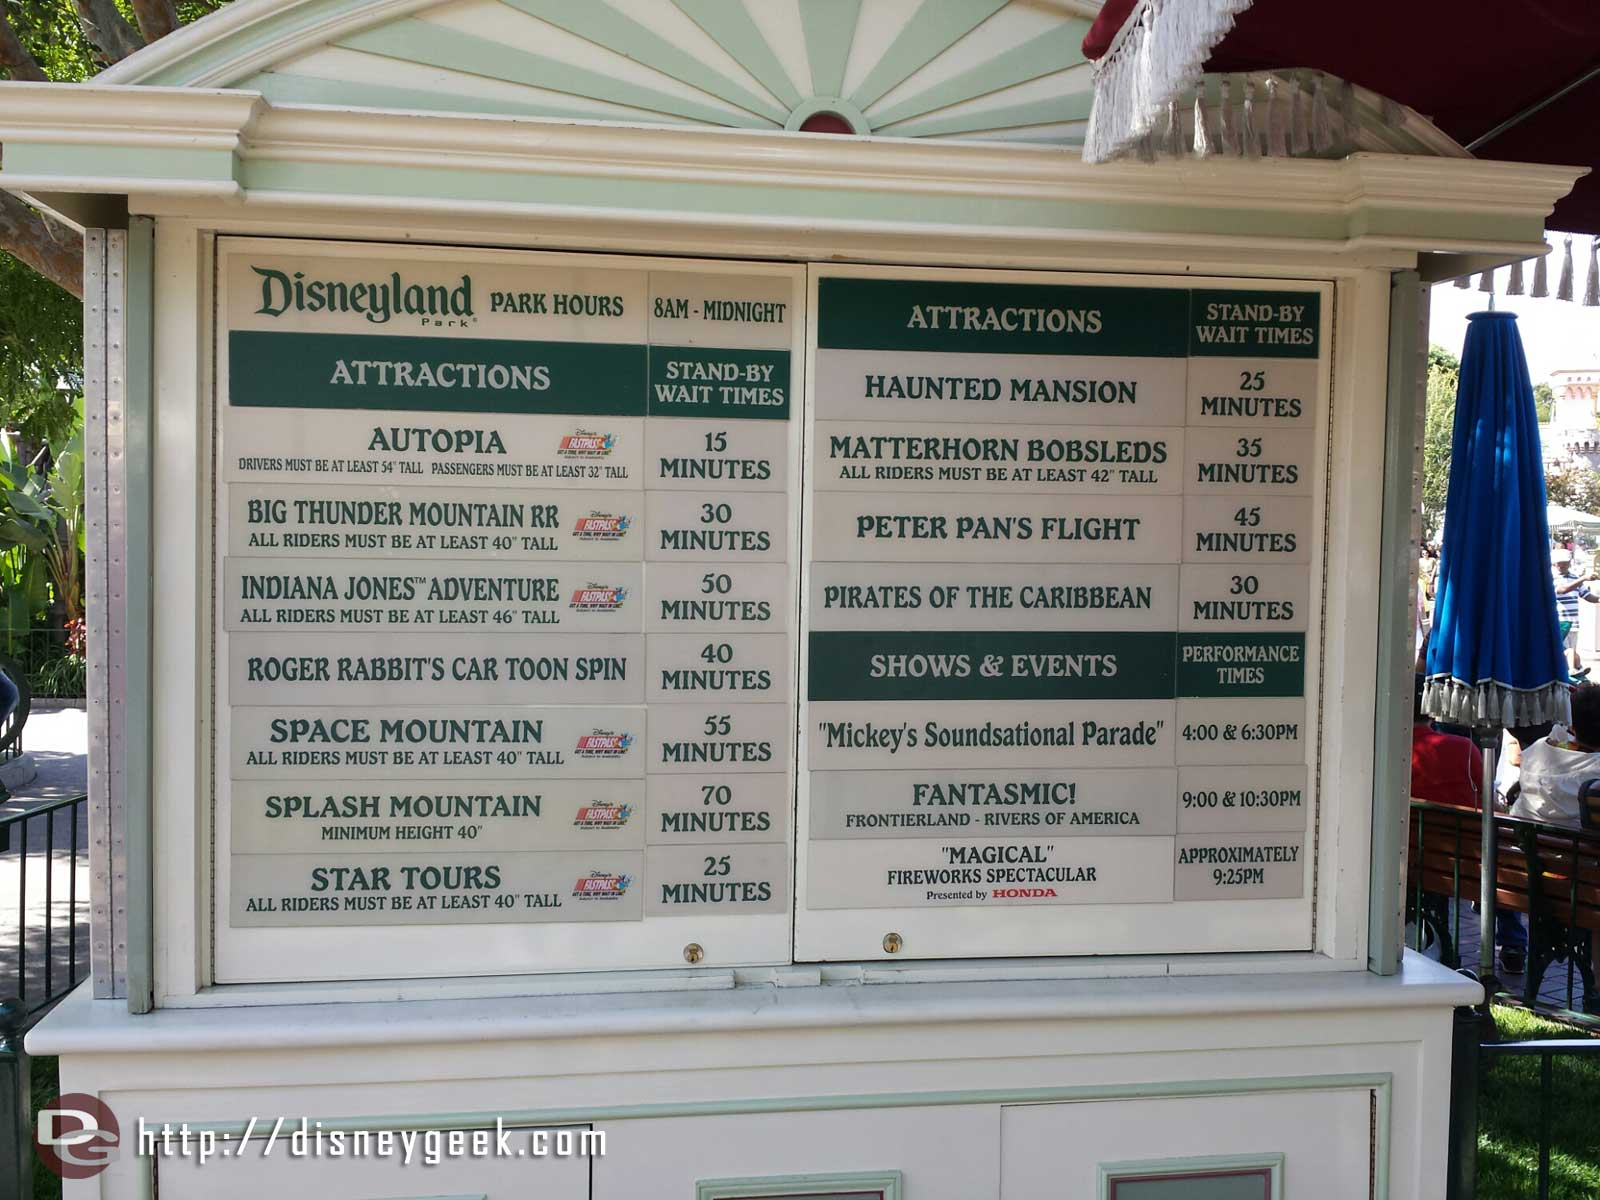 #Disneyland waits as of 3:45pm